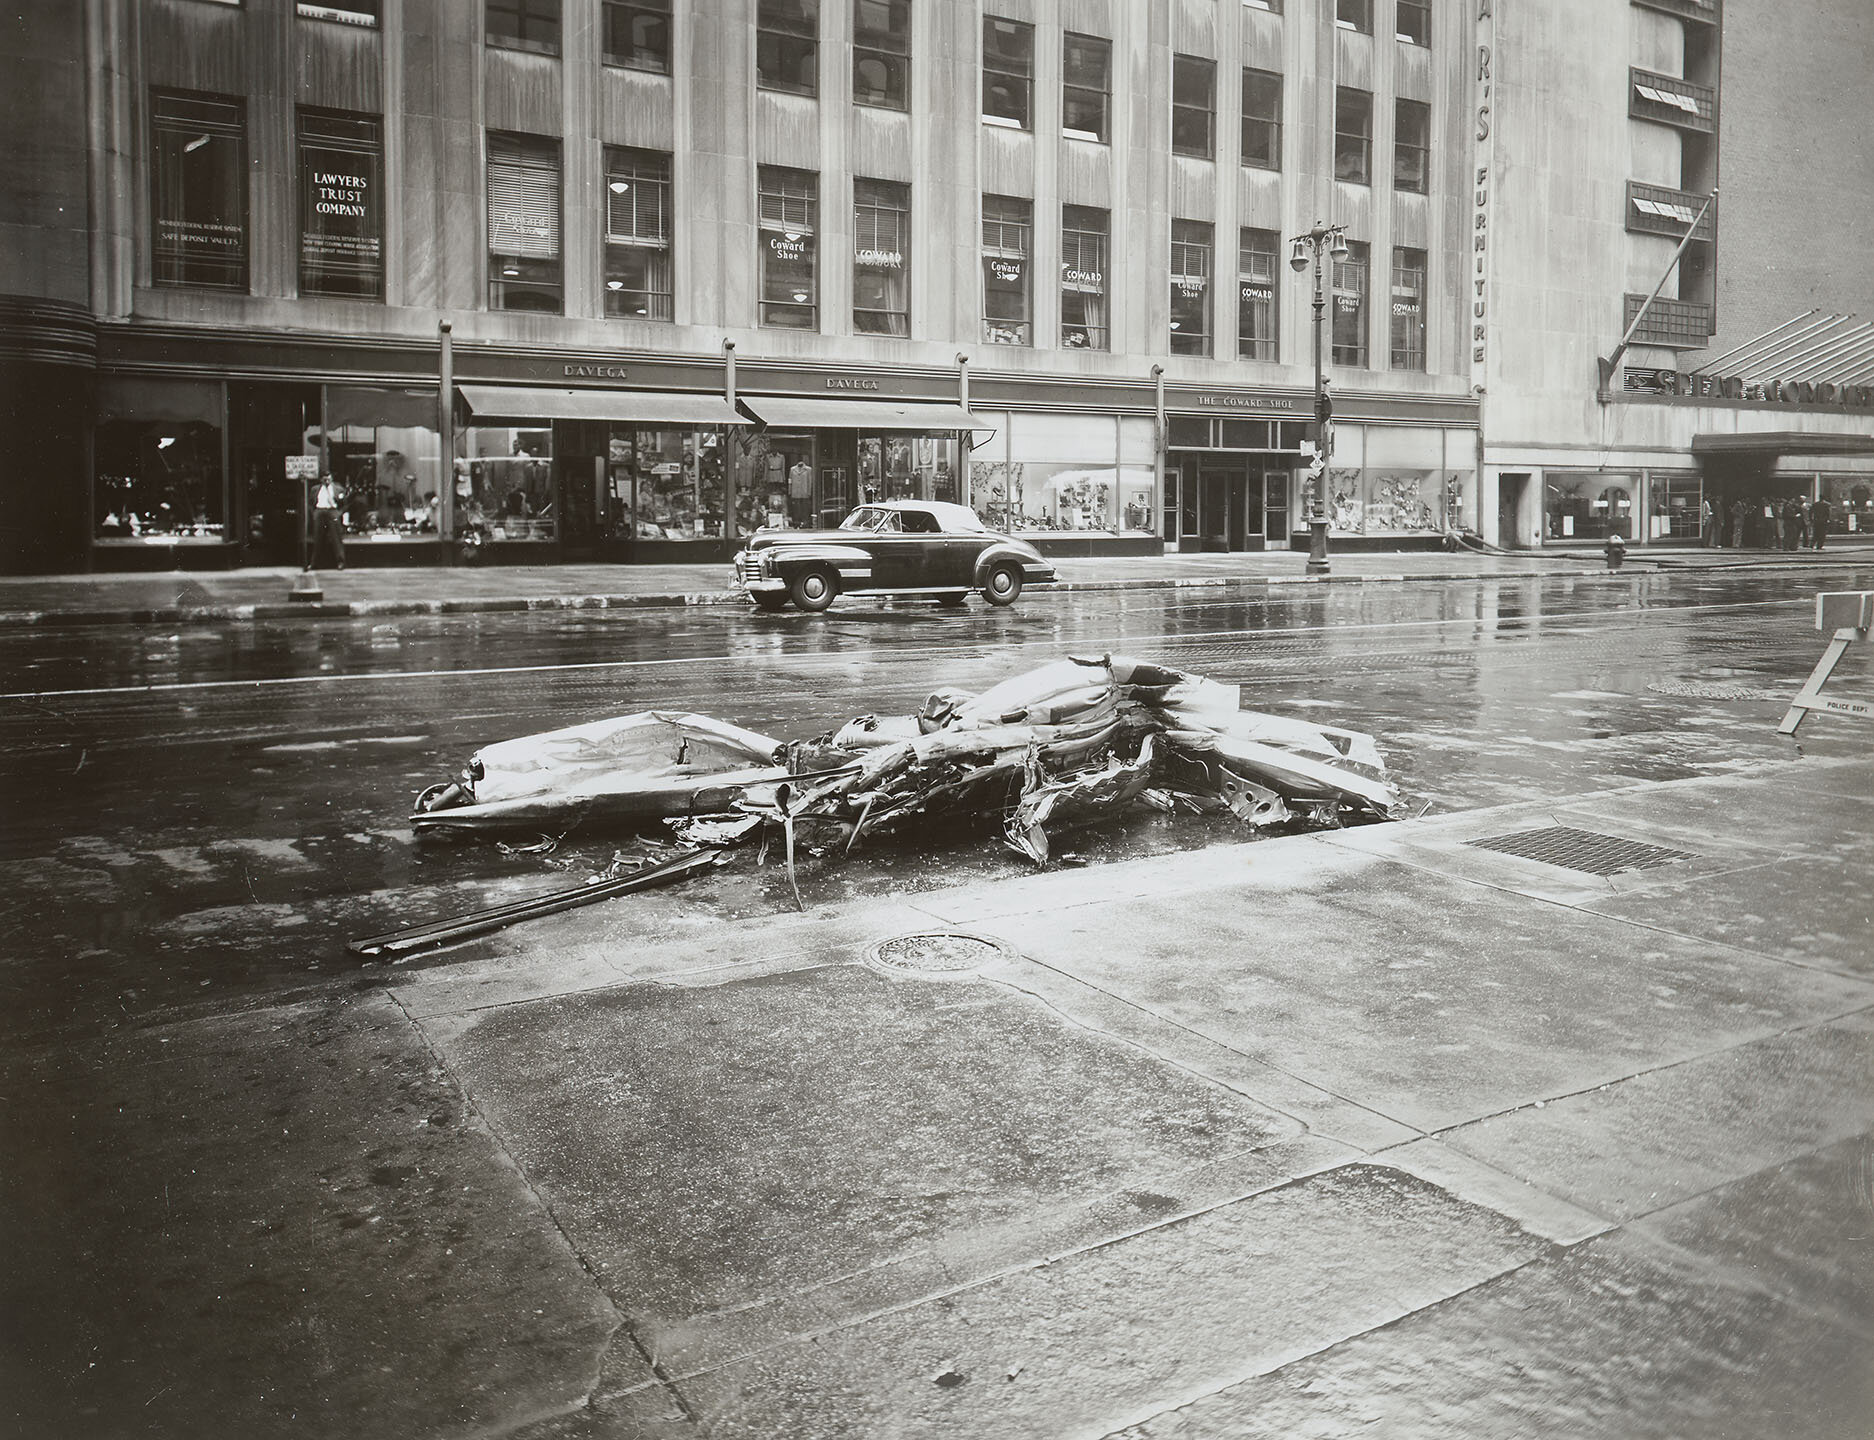 Empire State Building Disaster: 34th Street, showing parts of plane on N side of street; 1:20 pm, July 28, 1945. Mayor LaGuardia Collection, NYC Municipal Archives.